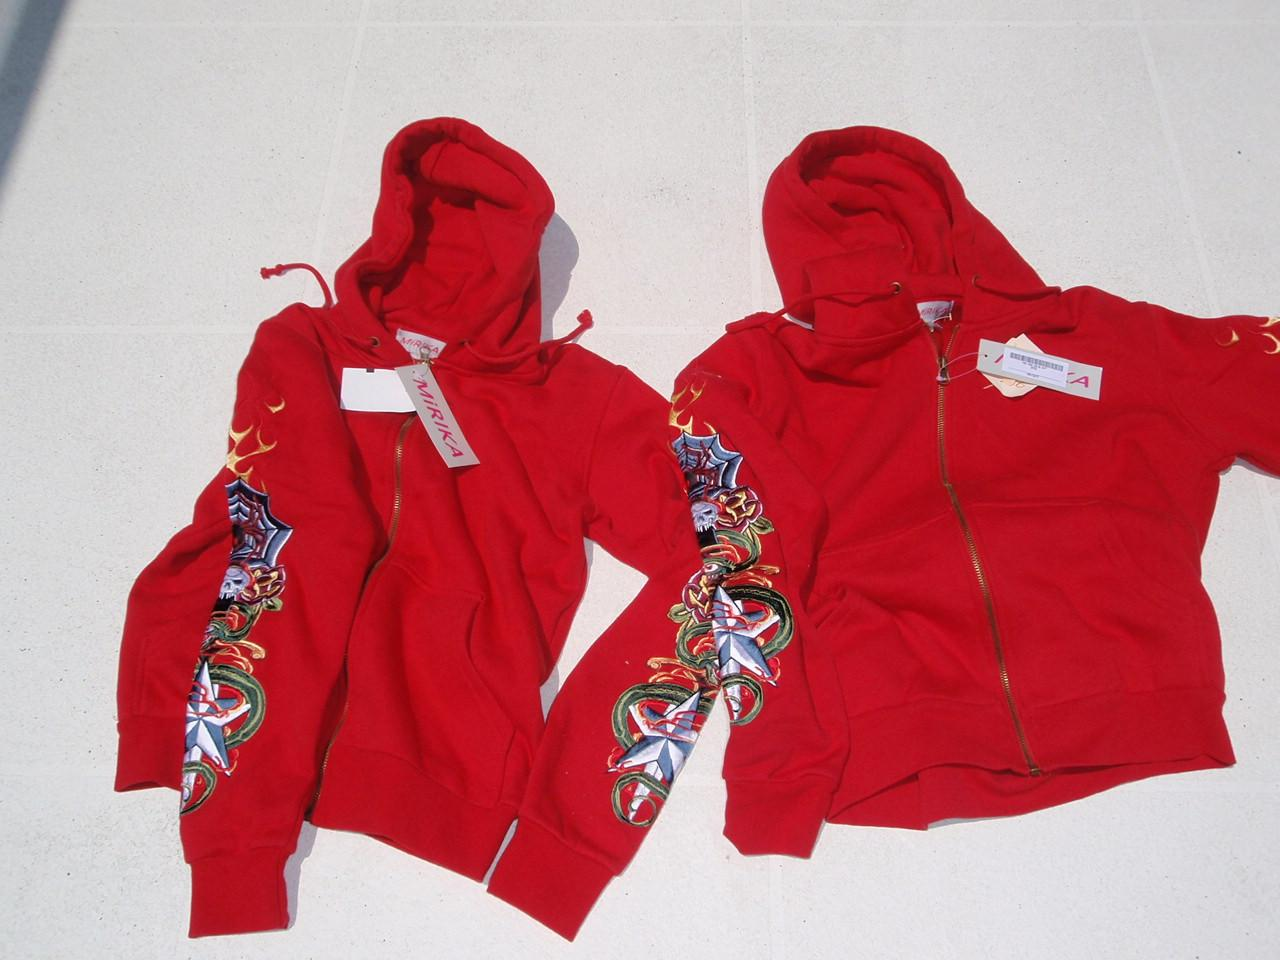 Recalled Mirika jackets